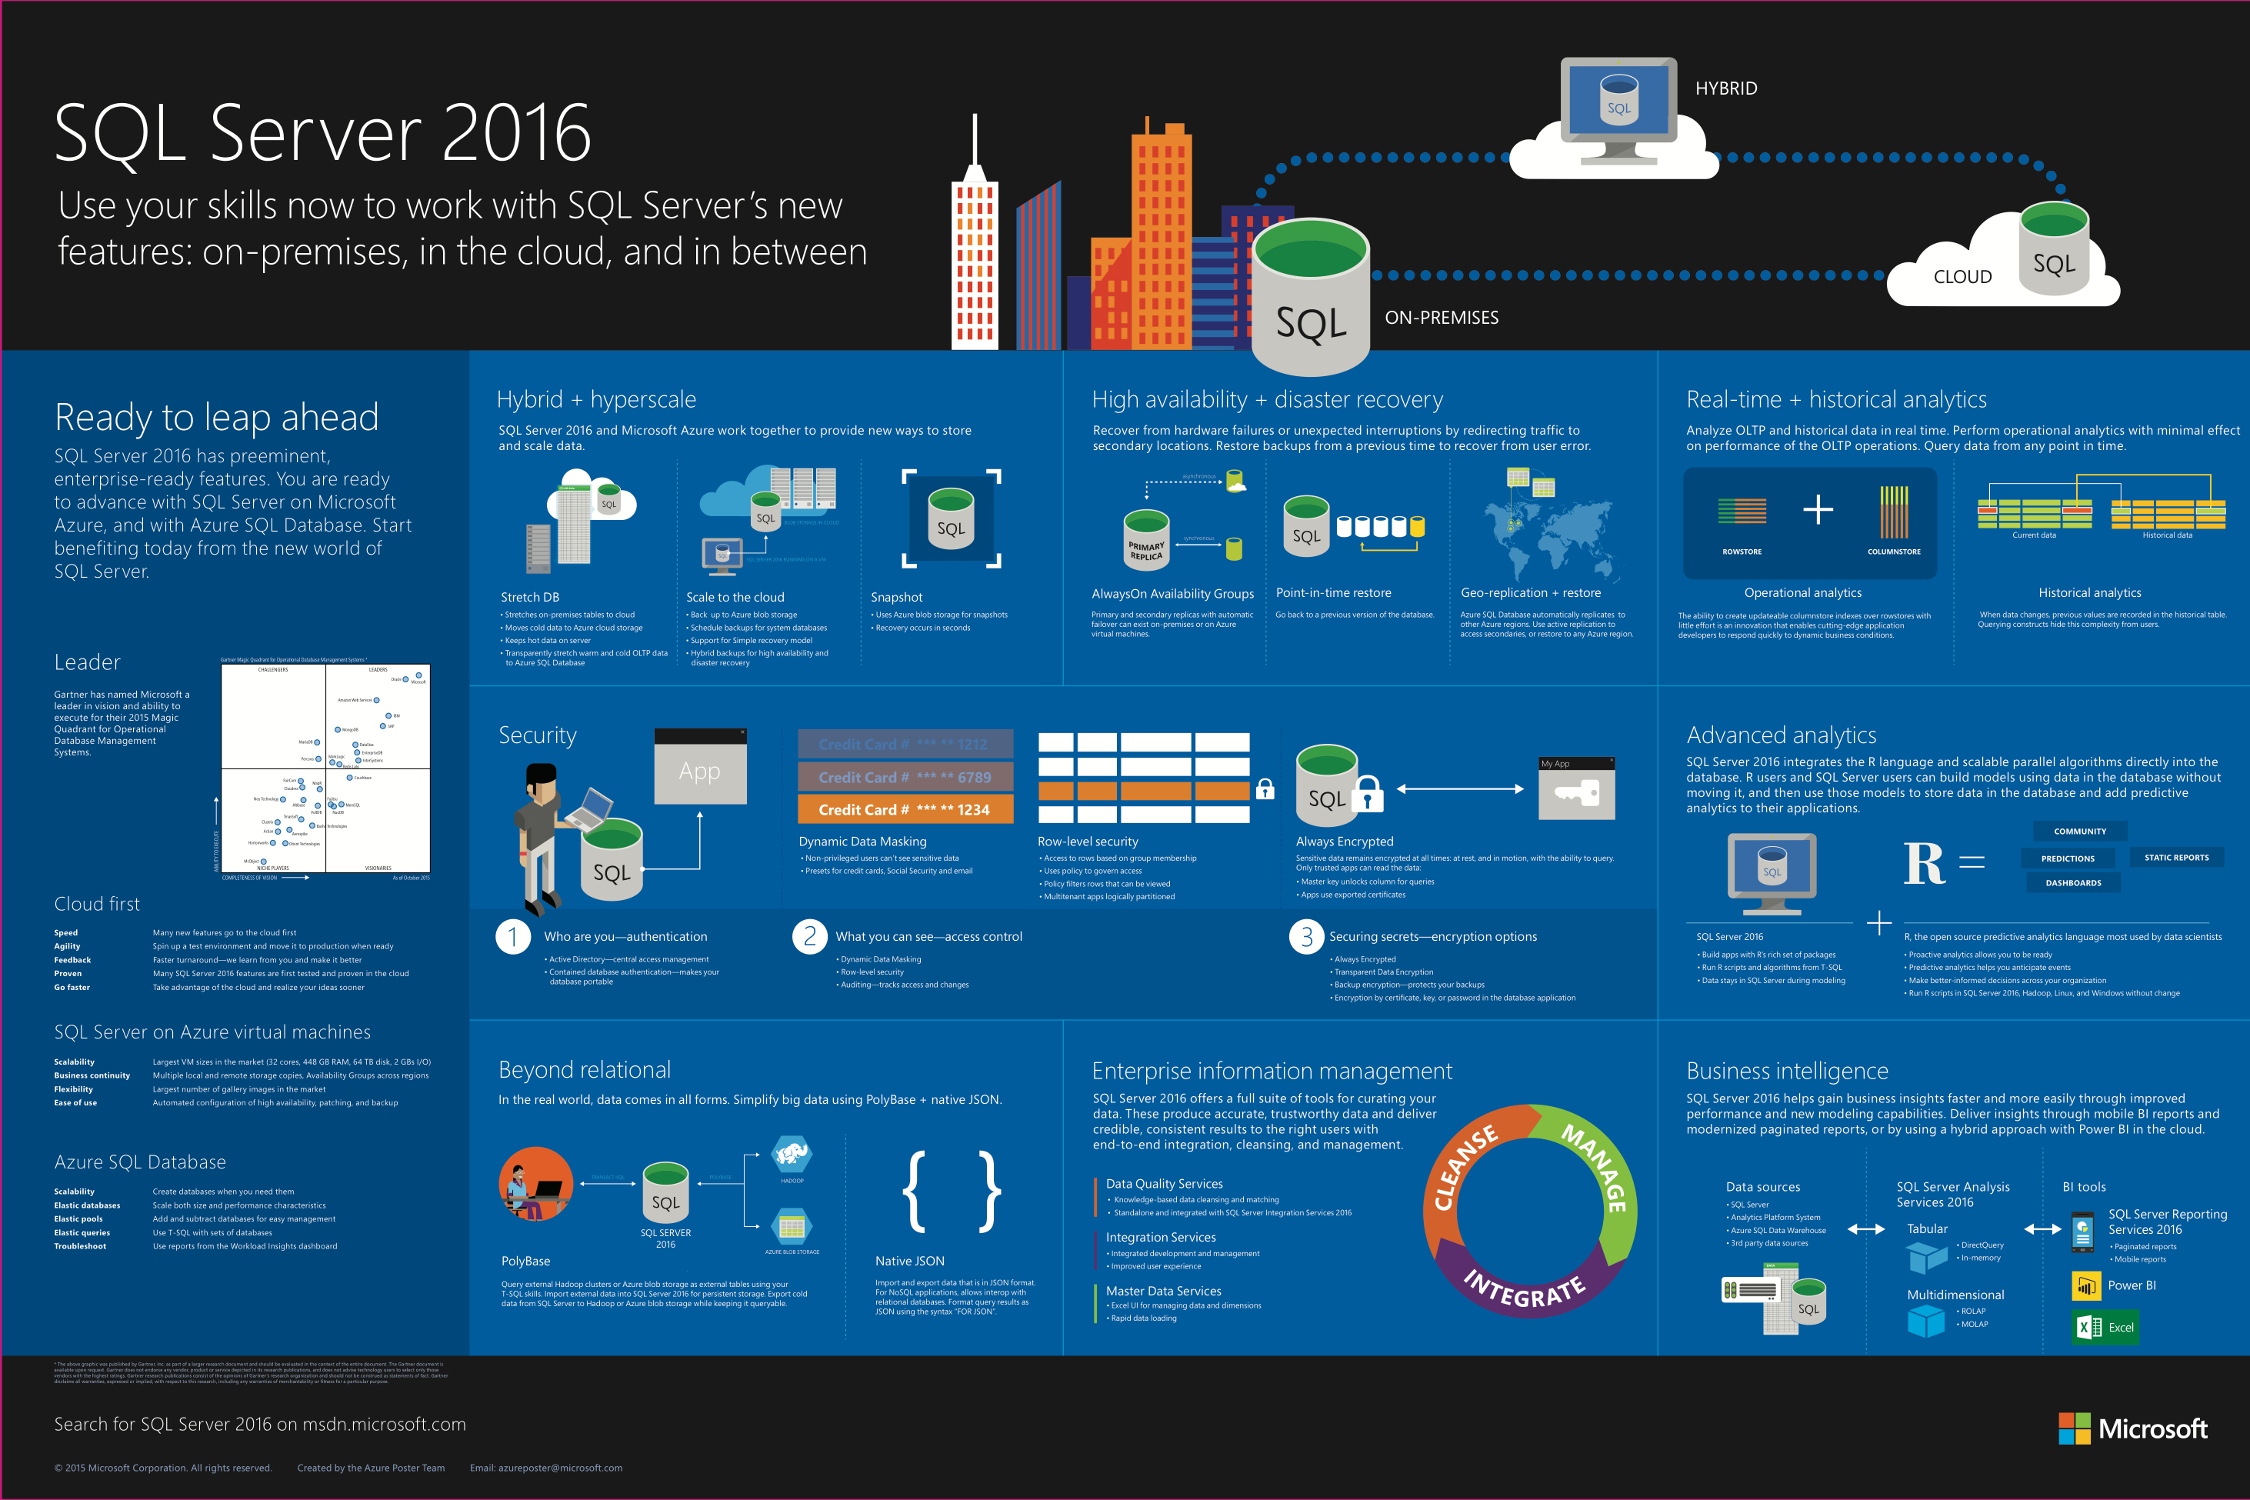 Visio Virtual Machine Diagram Square D Contactor Wiring Azure Infographic: Sql Server 2016 The Infographic Provides A Visual Overview Of ...